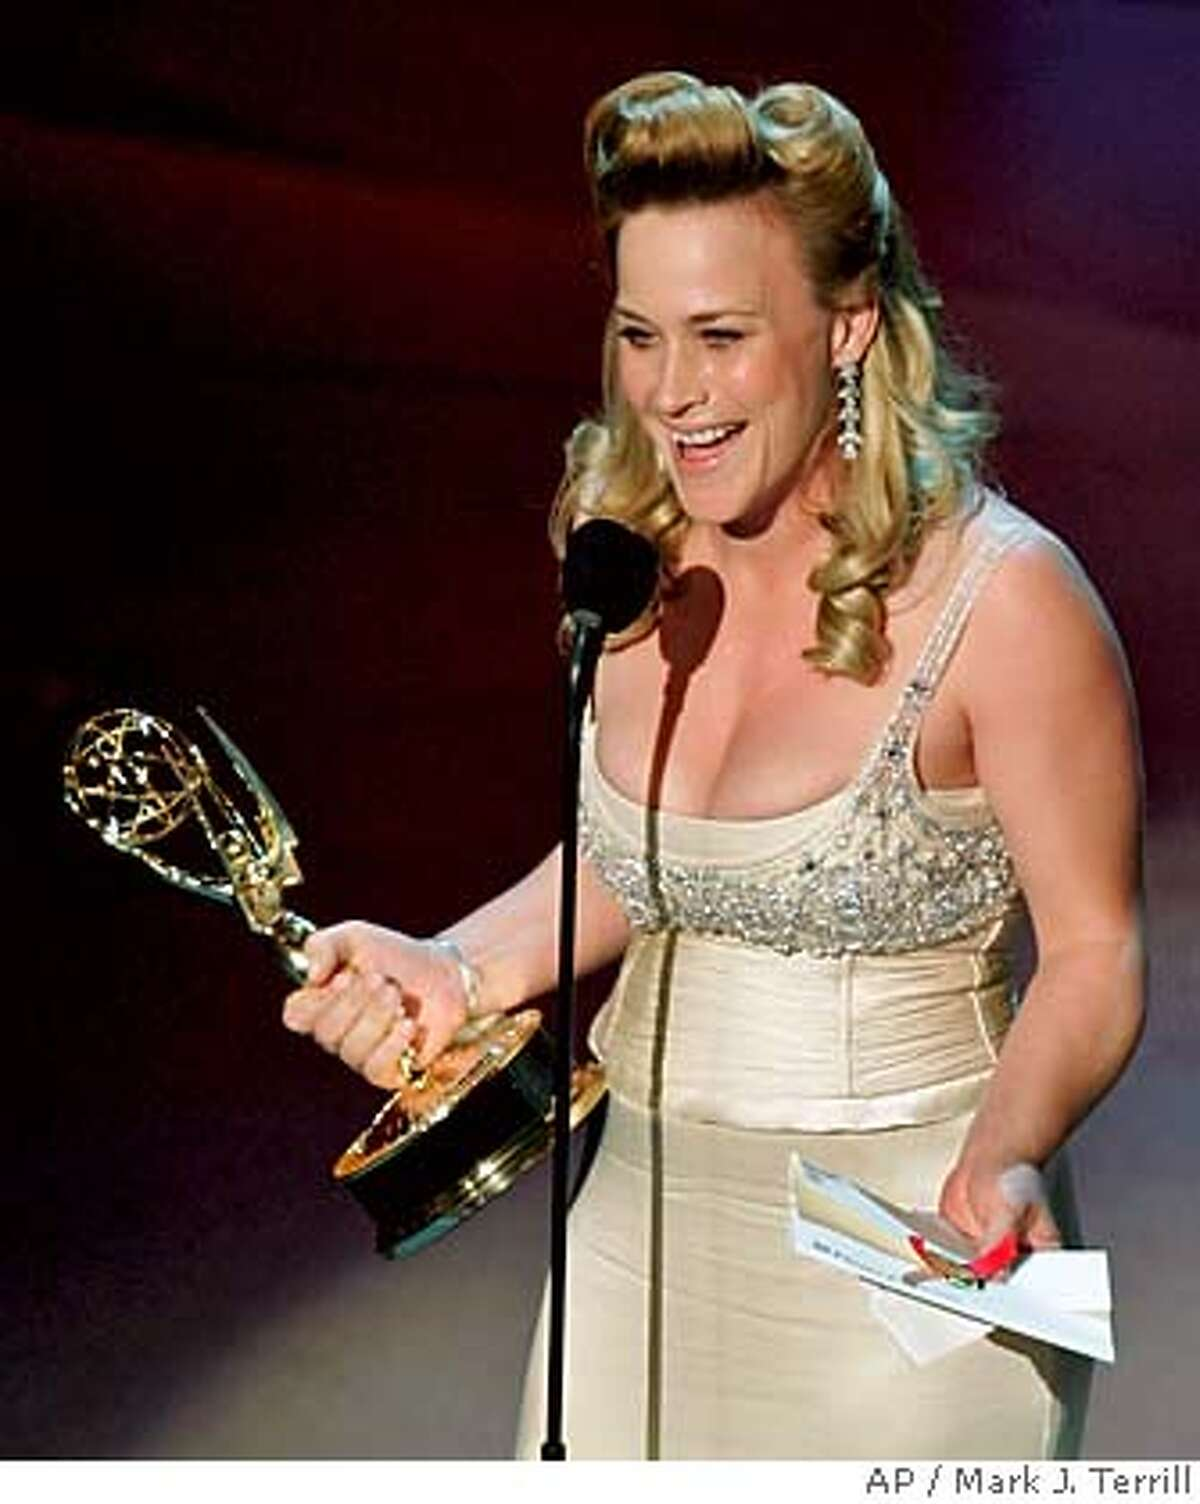 """Patricia Arquette accepts the award for outstanding lead actress in a drama series for her work on """"Medium"""" at the 57th Annual Primetime Emmy Awards Sunday, Sept. 18, 2005, in Los Angeles. (AP Photo/Mark J. Terrill)"""